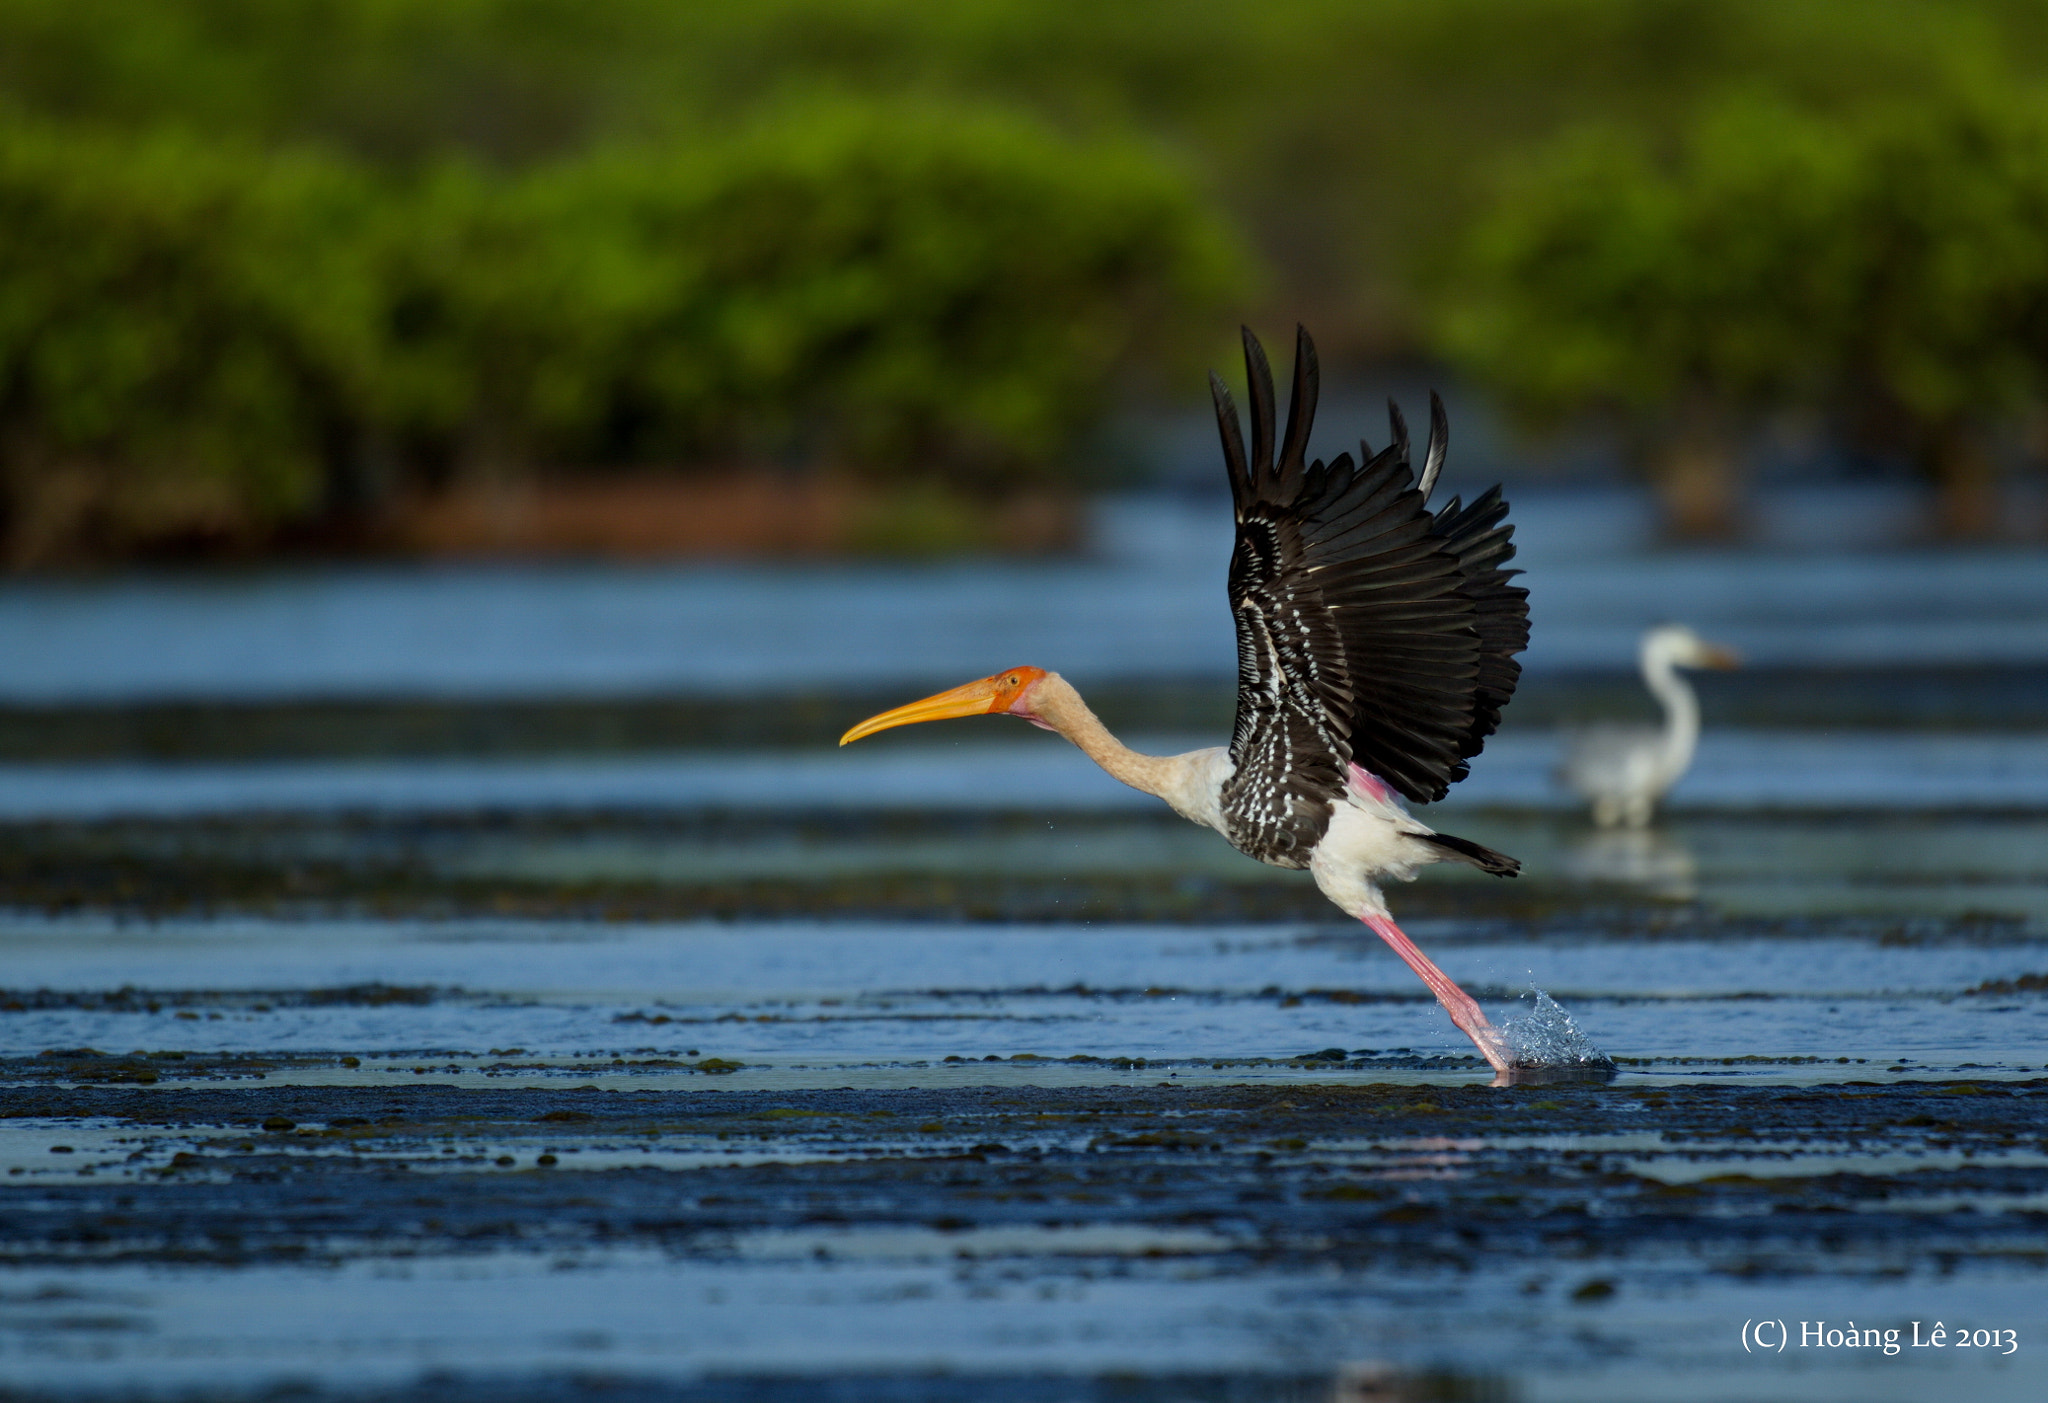 Photograph Taking off Painted Stork by Le Viet Tuan  Hoang on 500px